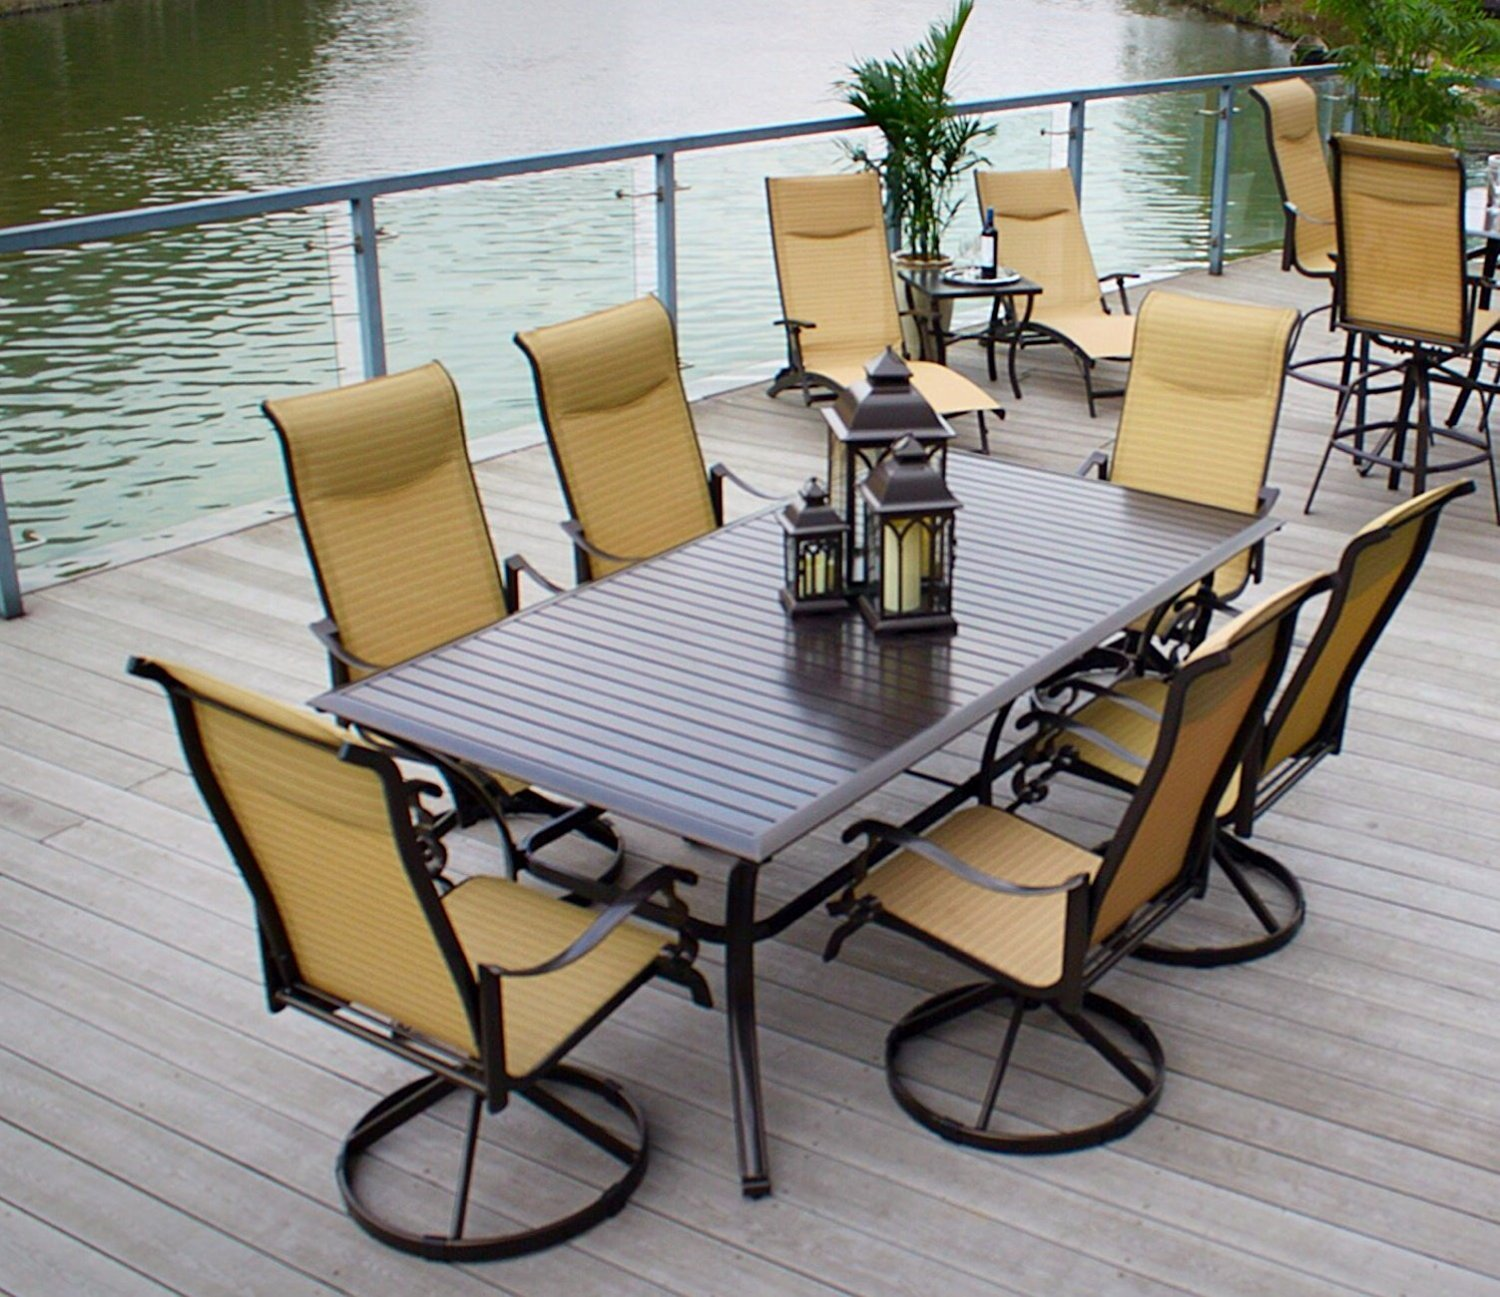 "Pebble Lane Living All Weather Rust Proof Indoor/Outdoor 7 Piece Cast Aluminum Patio Dining Set, 1 Slat Top Dining Table, 6 Swivel Rocking Dining Chairs with Padded Headrest & Umbrella, Brown/Cream - 6 Powder Coated Cast Alumiunum Swivel Rocking Bronze Chairs : 41"" H x 30"" D x 27"" W 1 Powder Coated Aluminum Slat Top Bronze Patio Table with Umbrella Hole: 82"" x 42"" x 29"" H Patio Dining Chairs have quick dry easy clean padded sling fabric with UV and Mold Resistant - patio-furniture, dining-sets-patio-funiture, patio - 81gTPFrUh8L -"